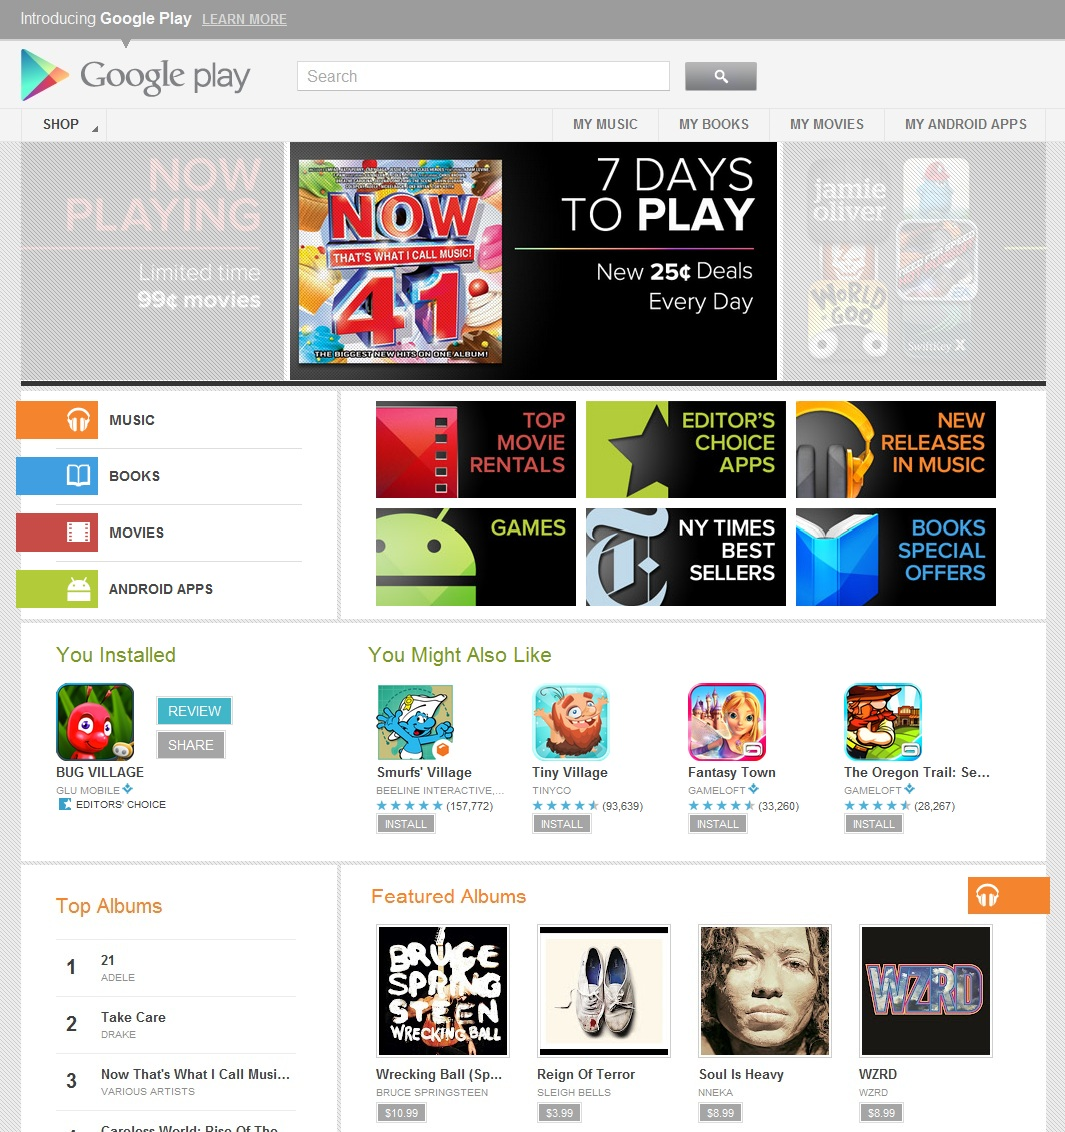 Android Market relaunched as 'Google Play'